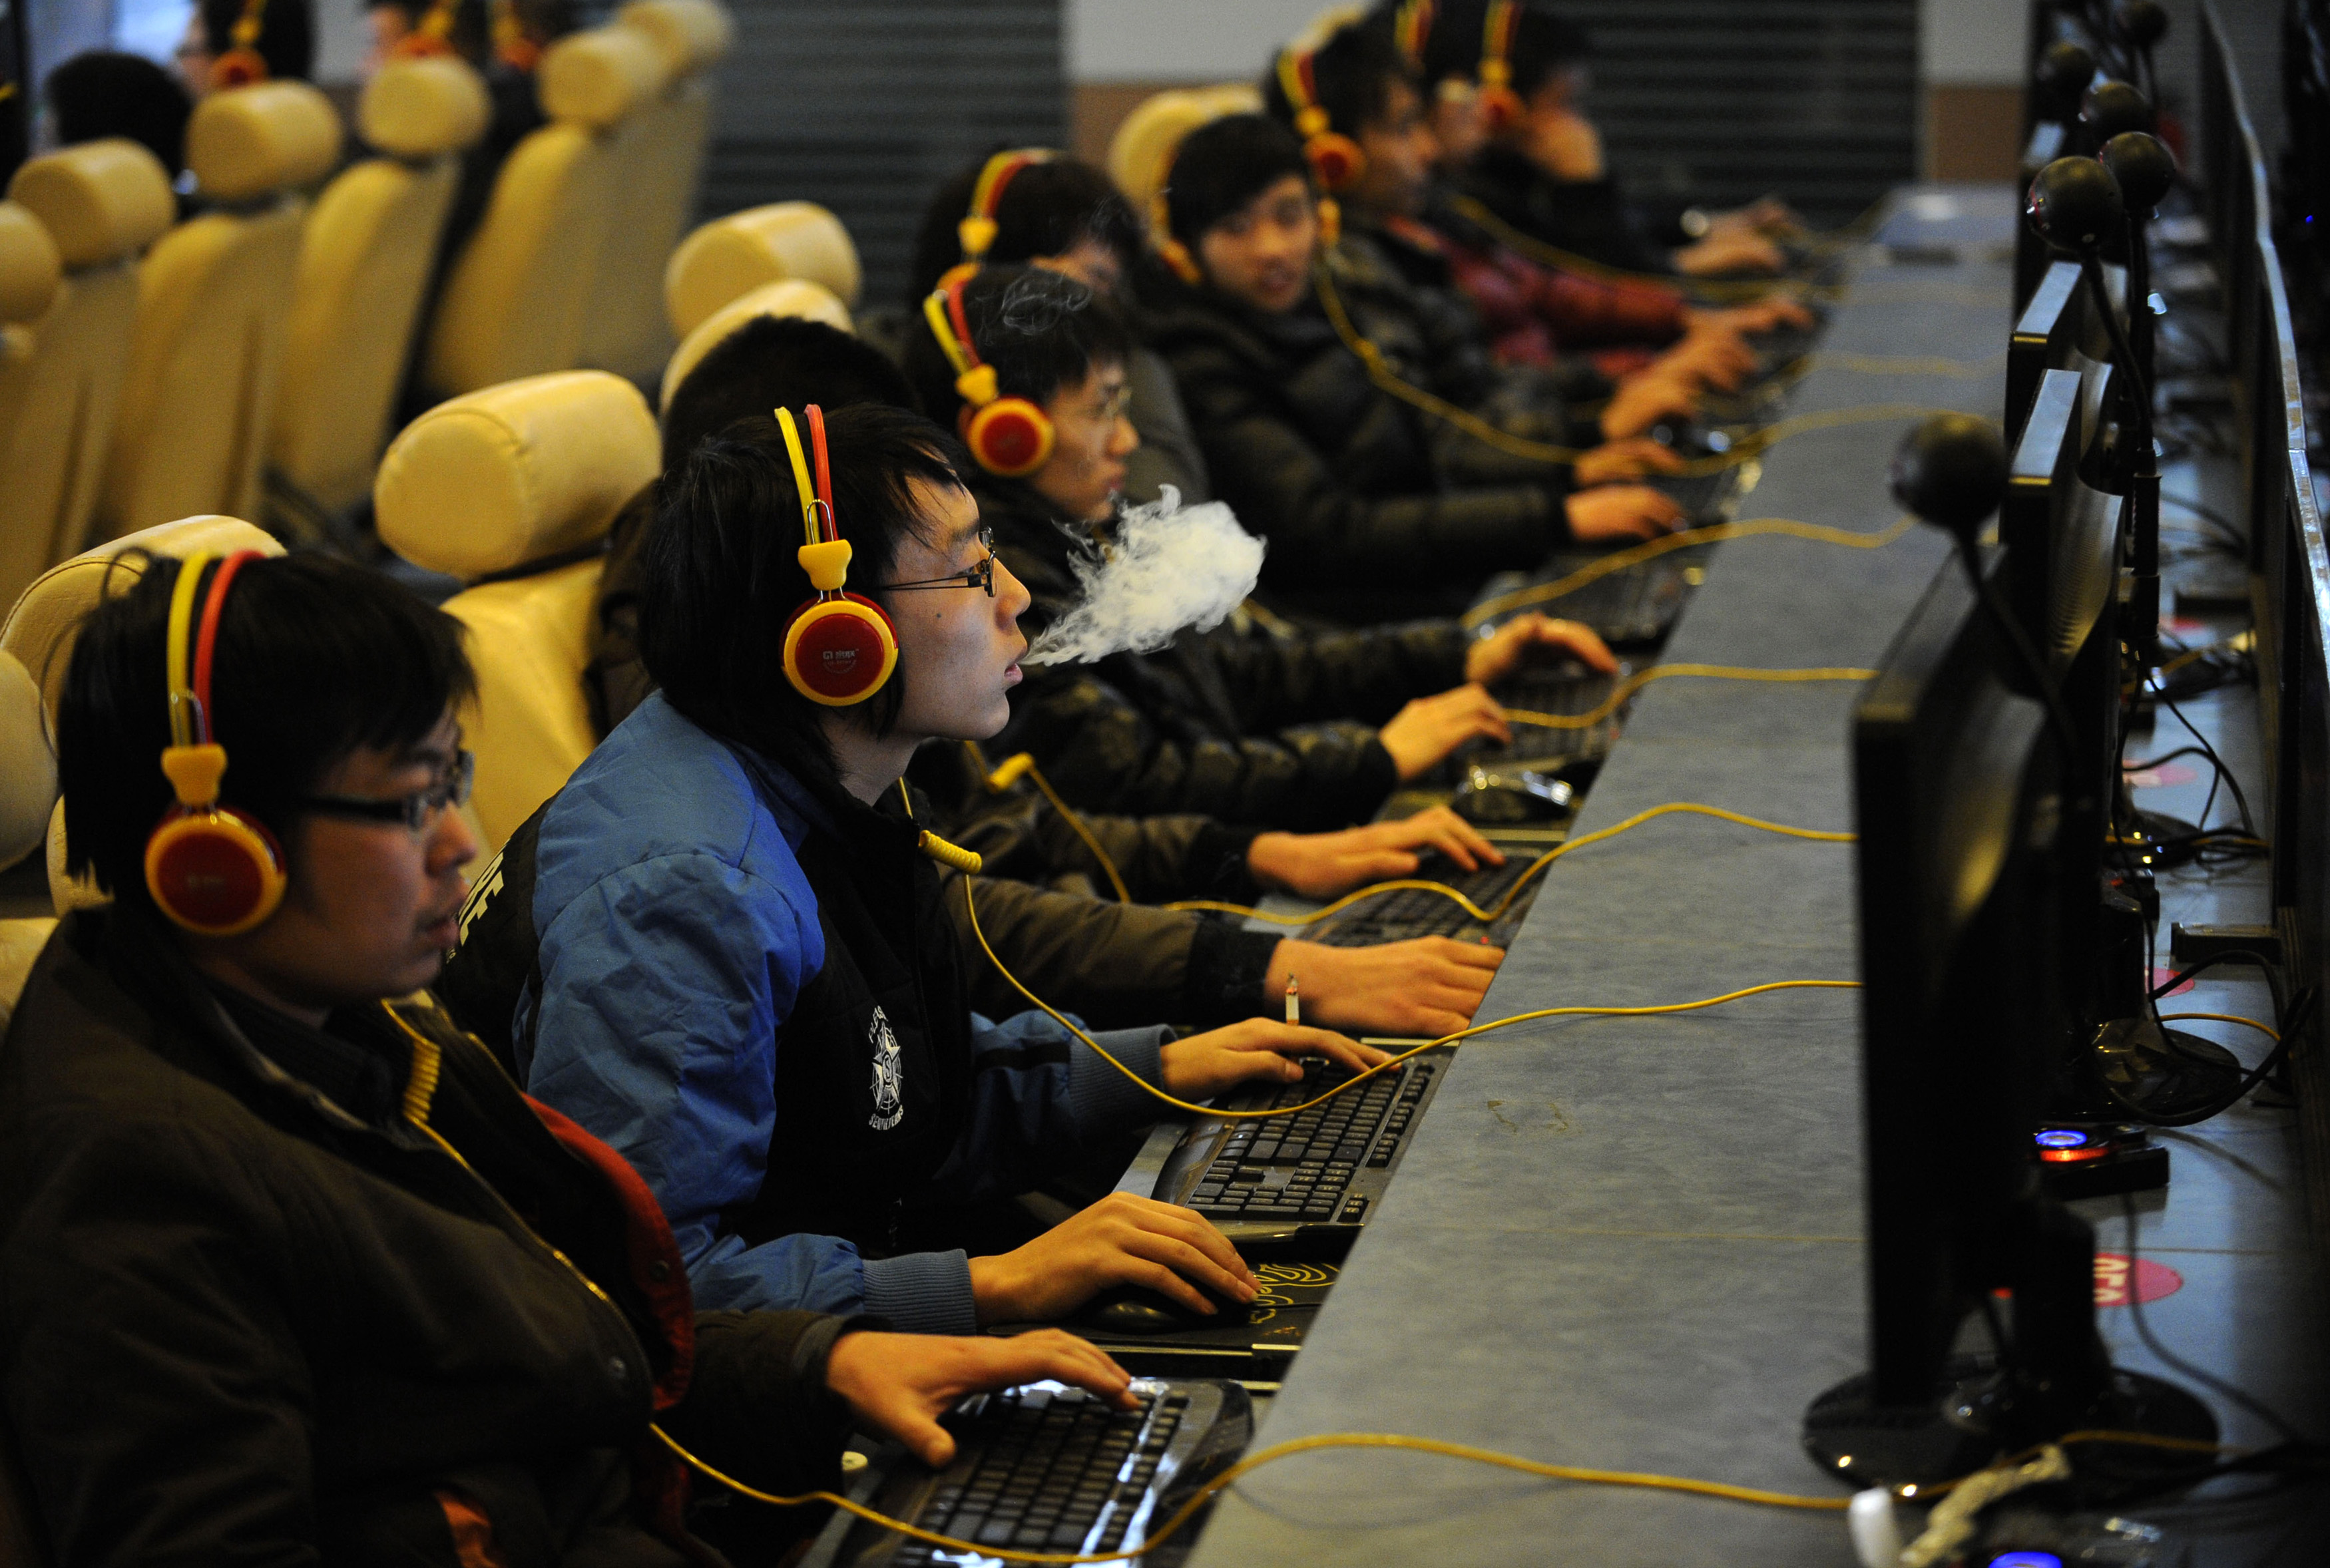 FILE - A man smokes while using a computer at an internet cafe in Taiyuan, Shanxi province, Dec. 30, 2010.